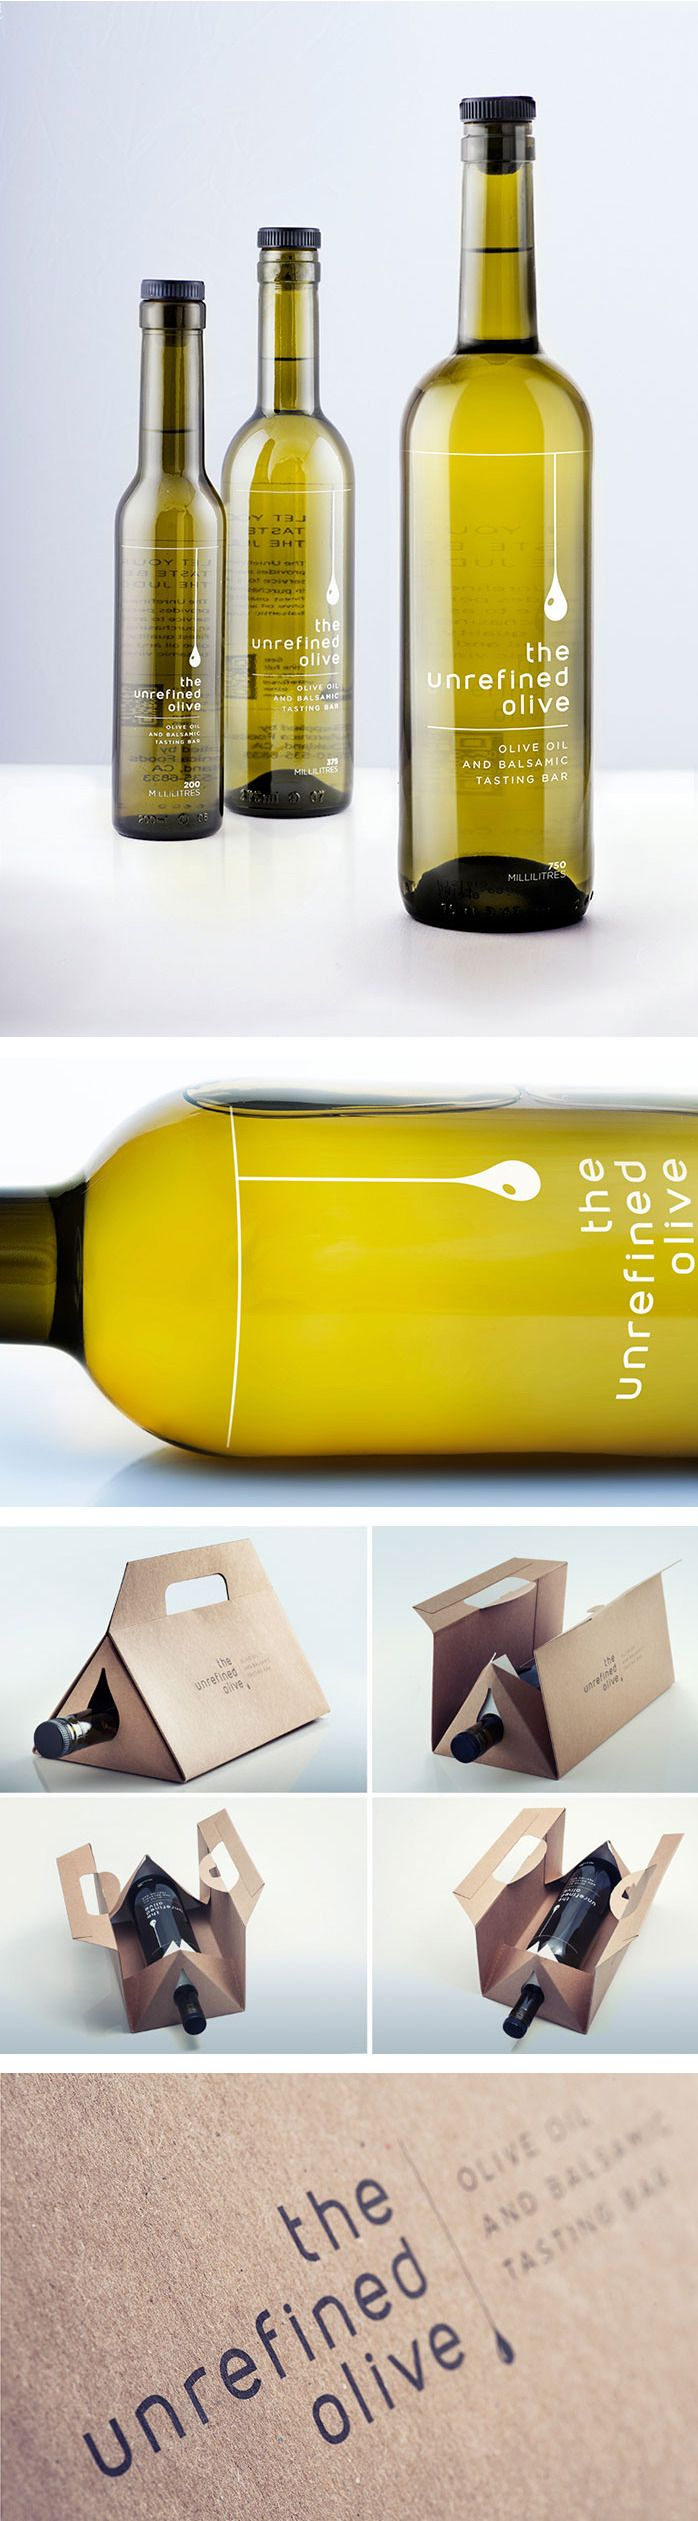 The Unrefined Olive Oil PD